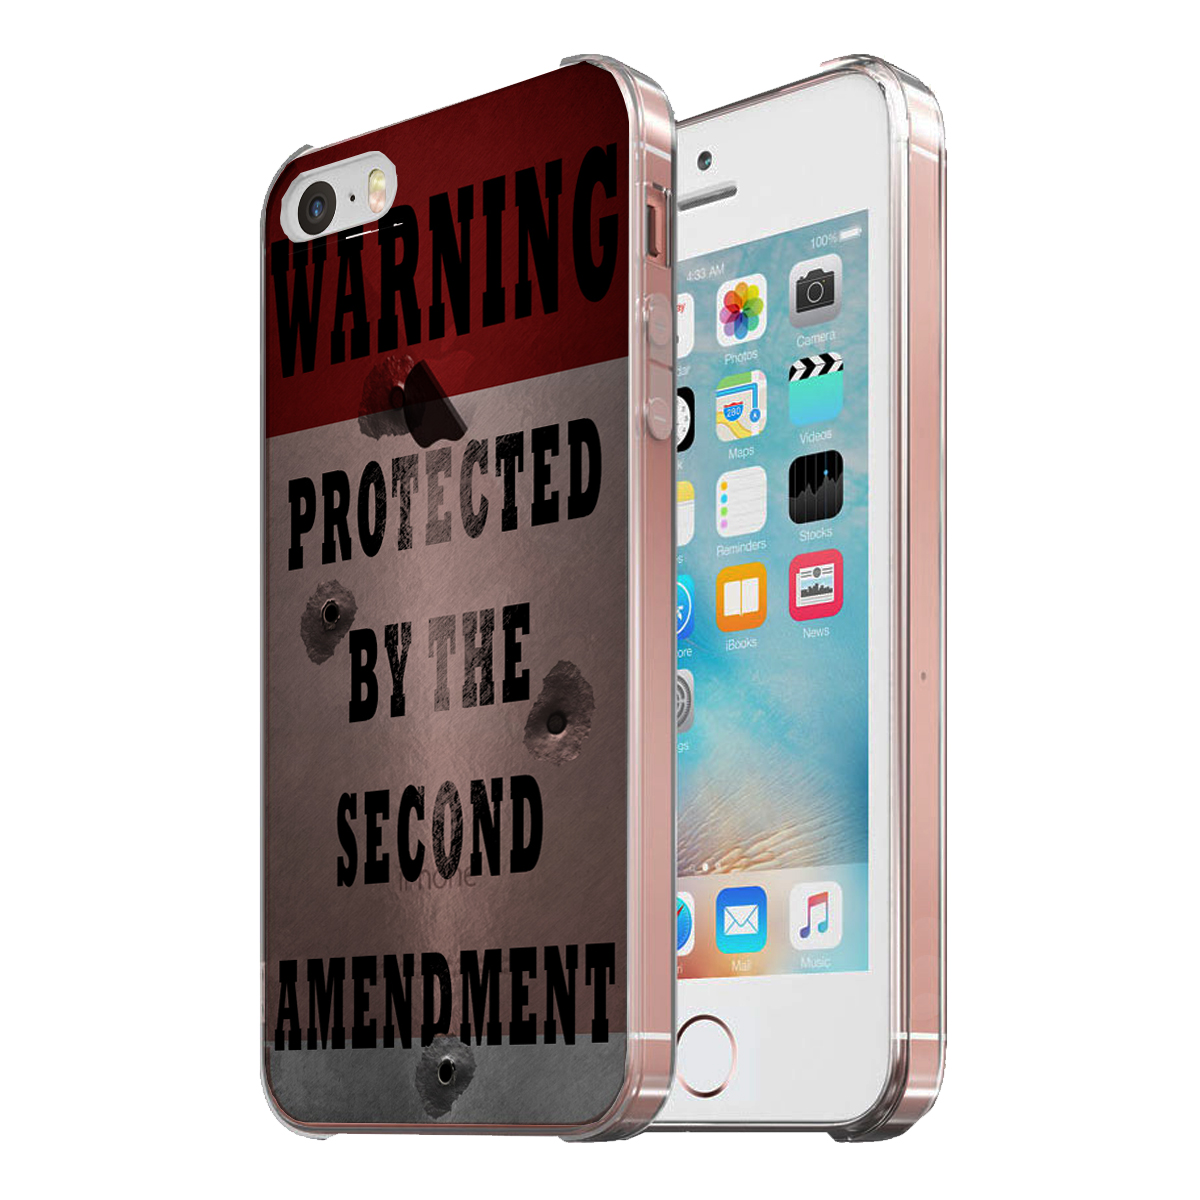 KuzmarK Clear Cover Case fits iPhone SE & iPhone 5 - Warning Second Amendment Bullet Holes